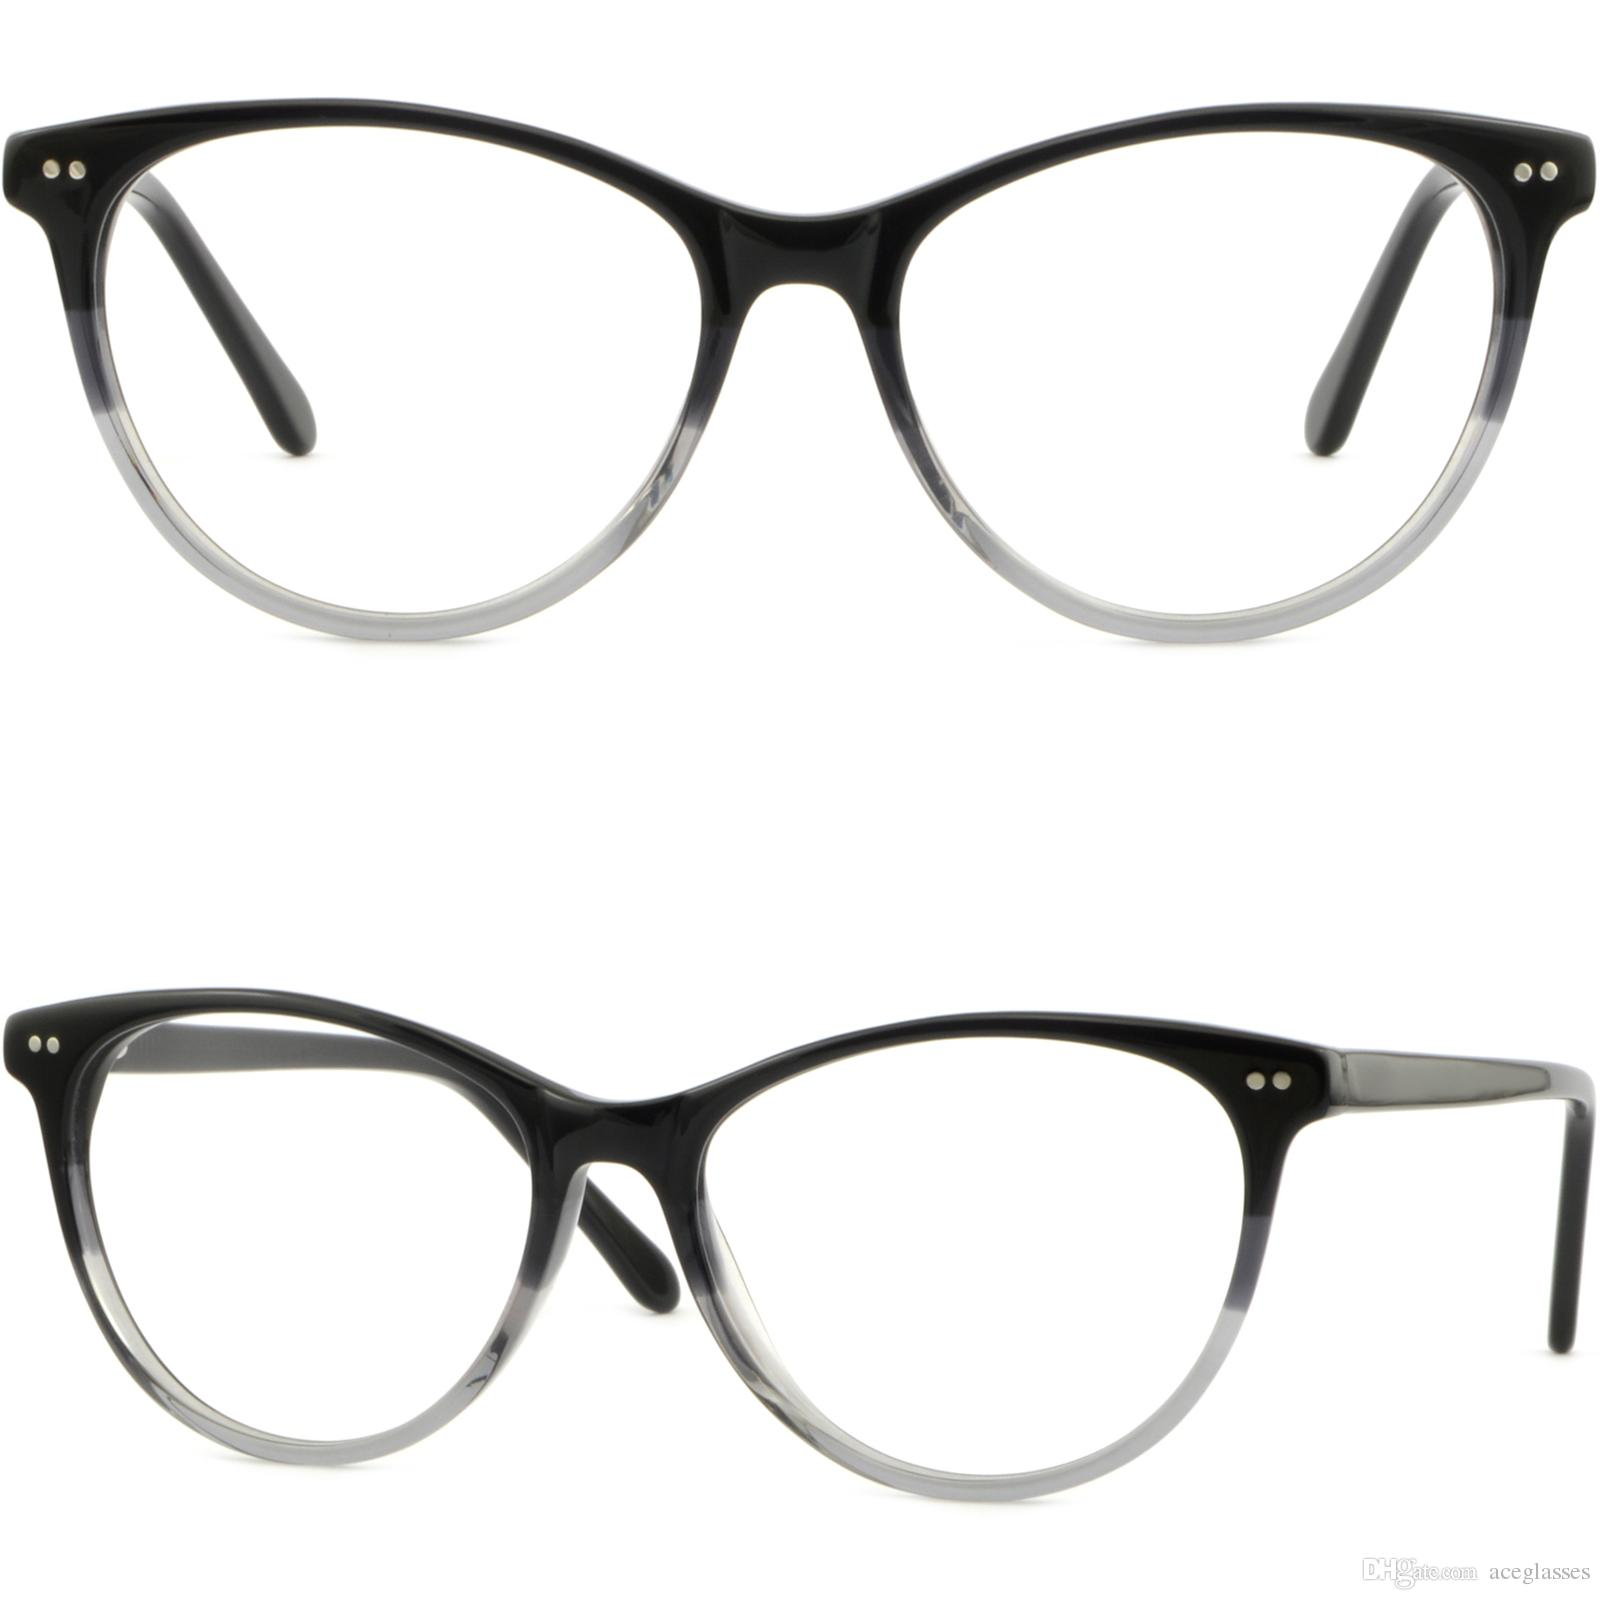 464238971b Thin Men Women Acetate Frame Spring Hinge Round Glasses Silver Dot Accents  Black Rimless Eyeglasses Frames Stylish Eyeglass Frames From Aceglasses